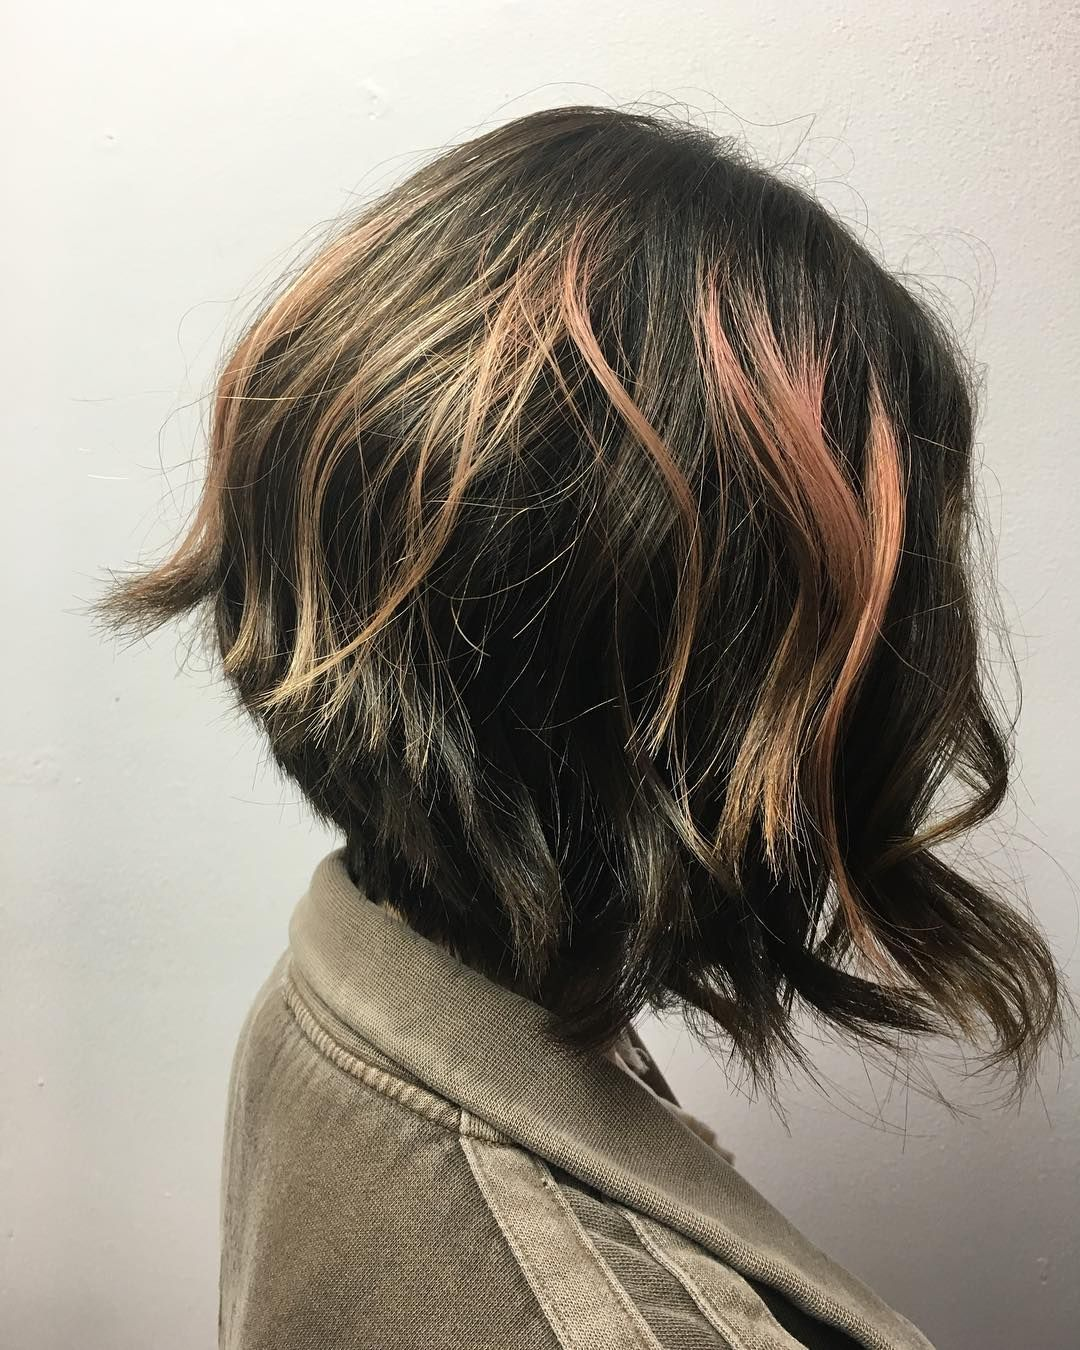 Stylish short hairstyle designs for women over best short